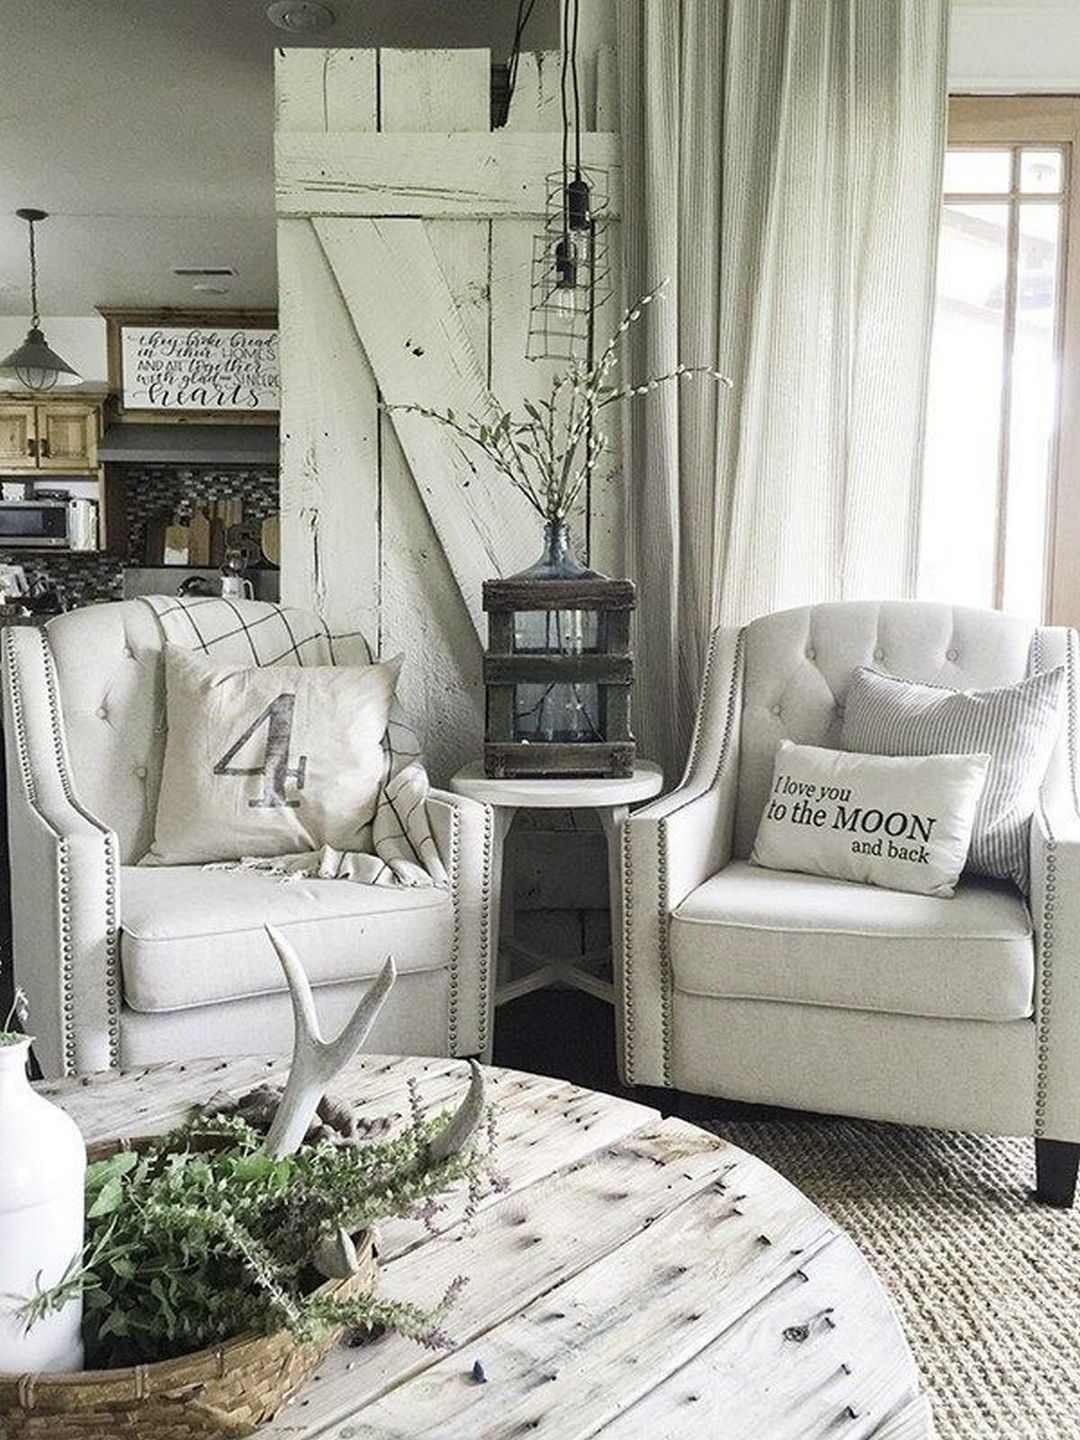 4 Things You Need to Know About Farmhouse Style House